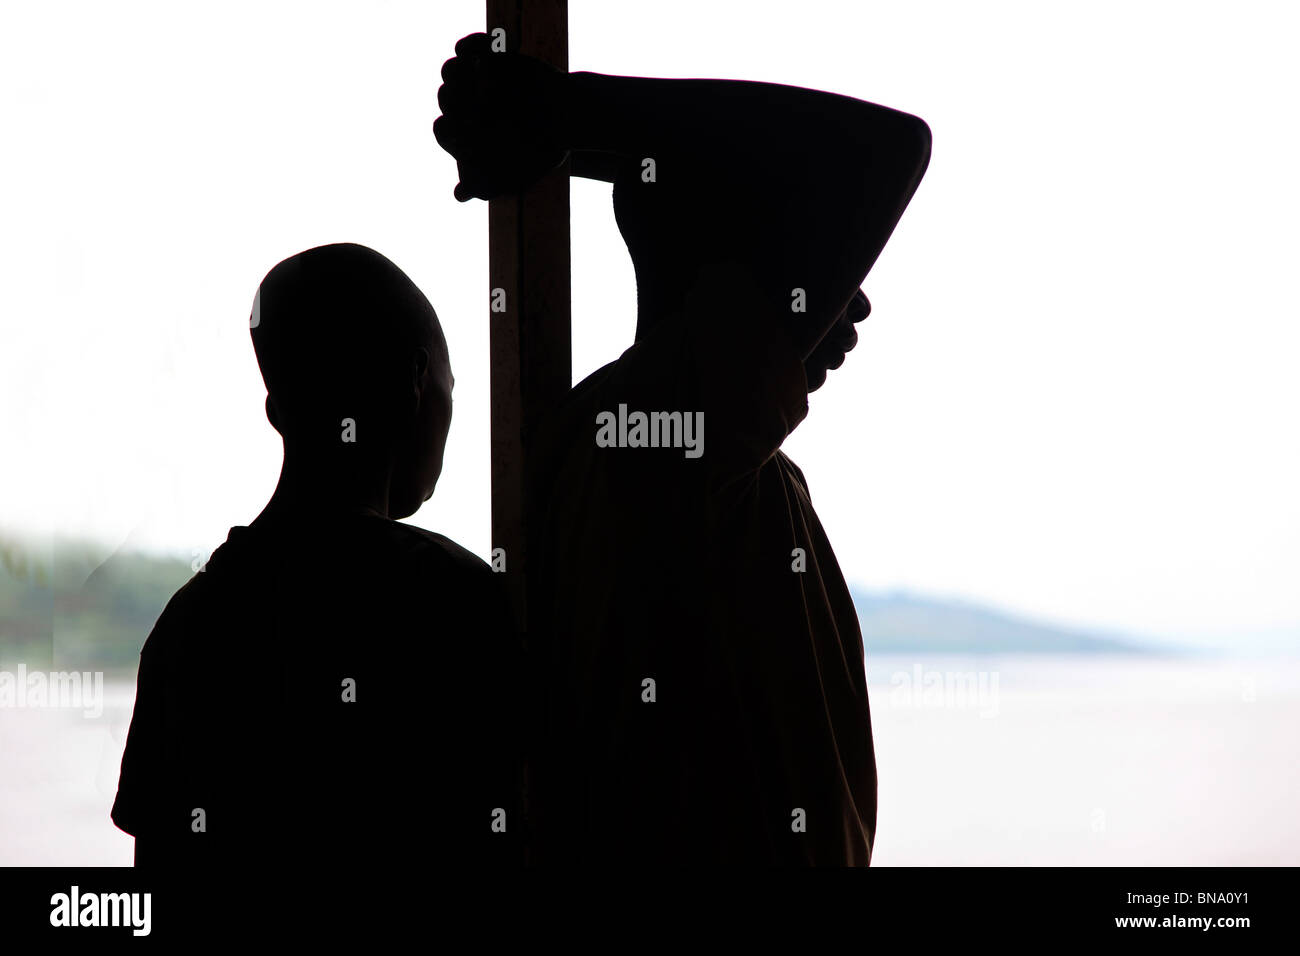 Silhouette of african boys - Stock Image